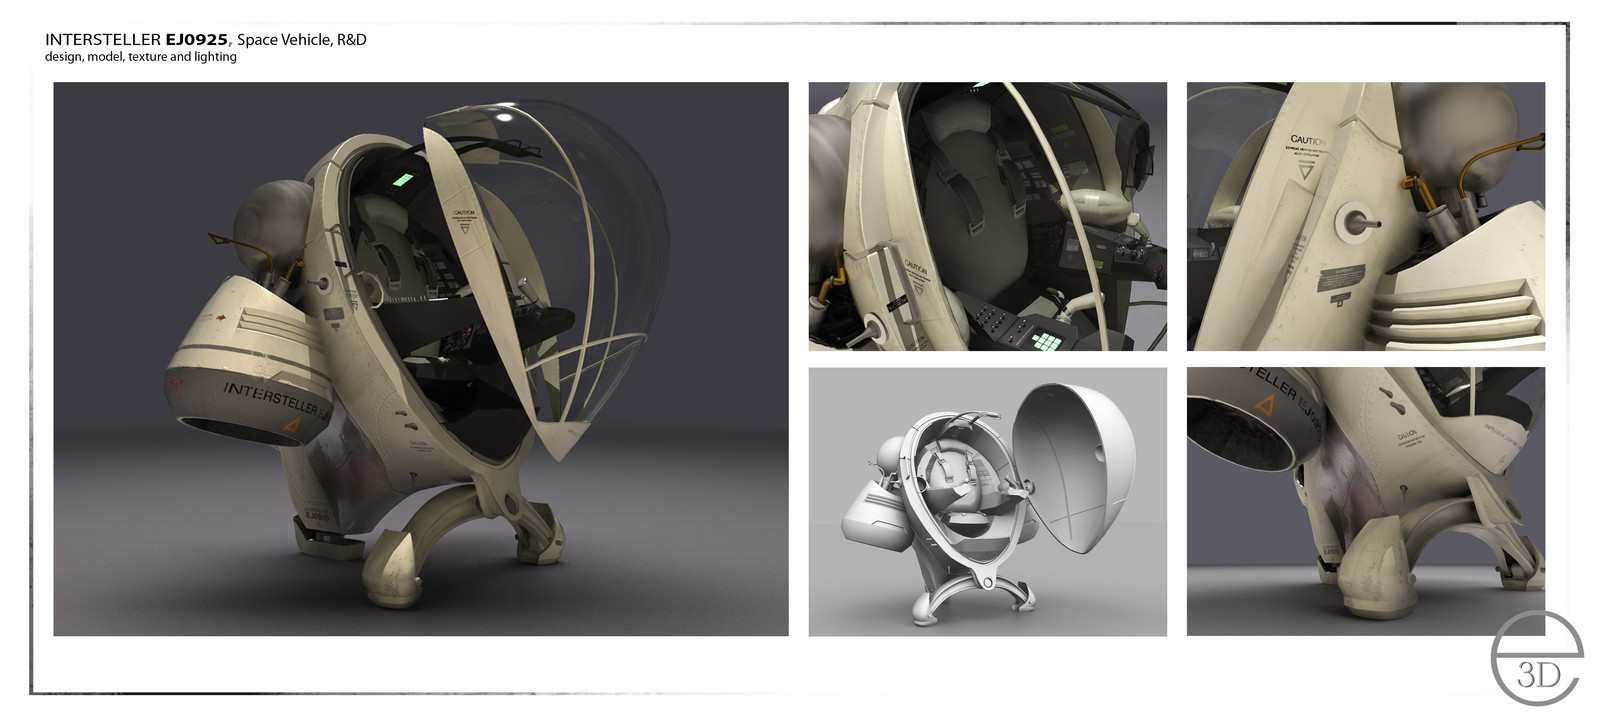 Space vehicle R&D: design, model, texture and light